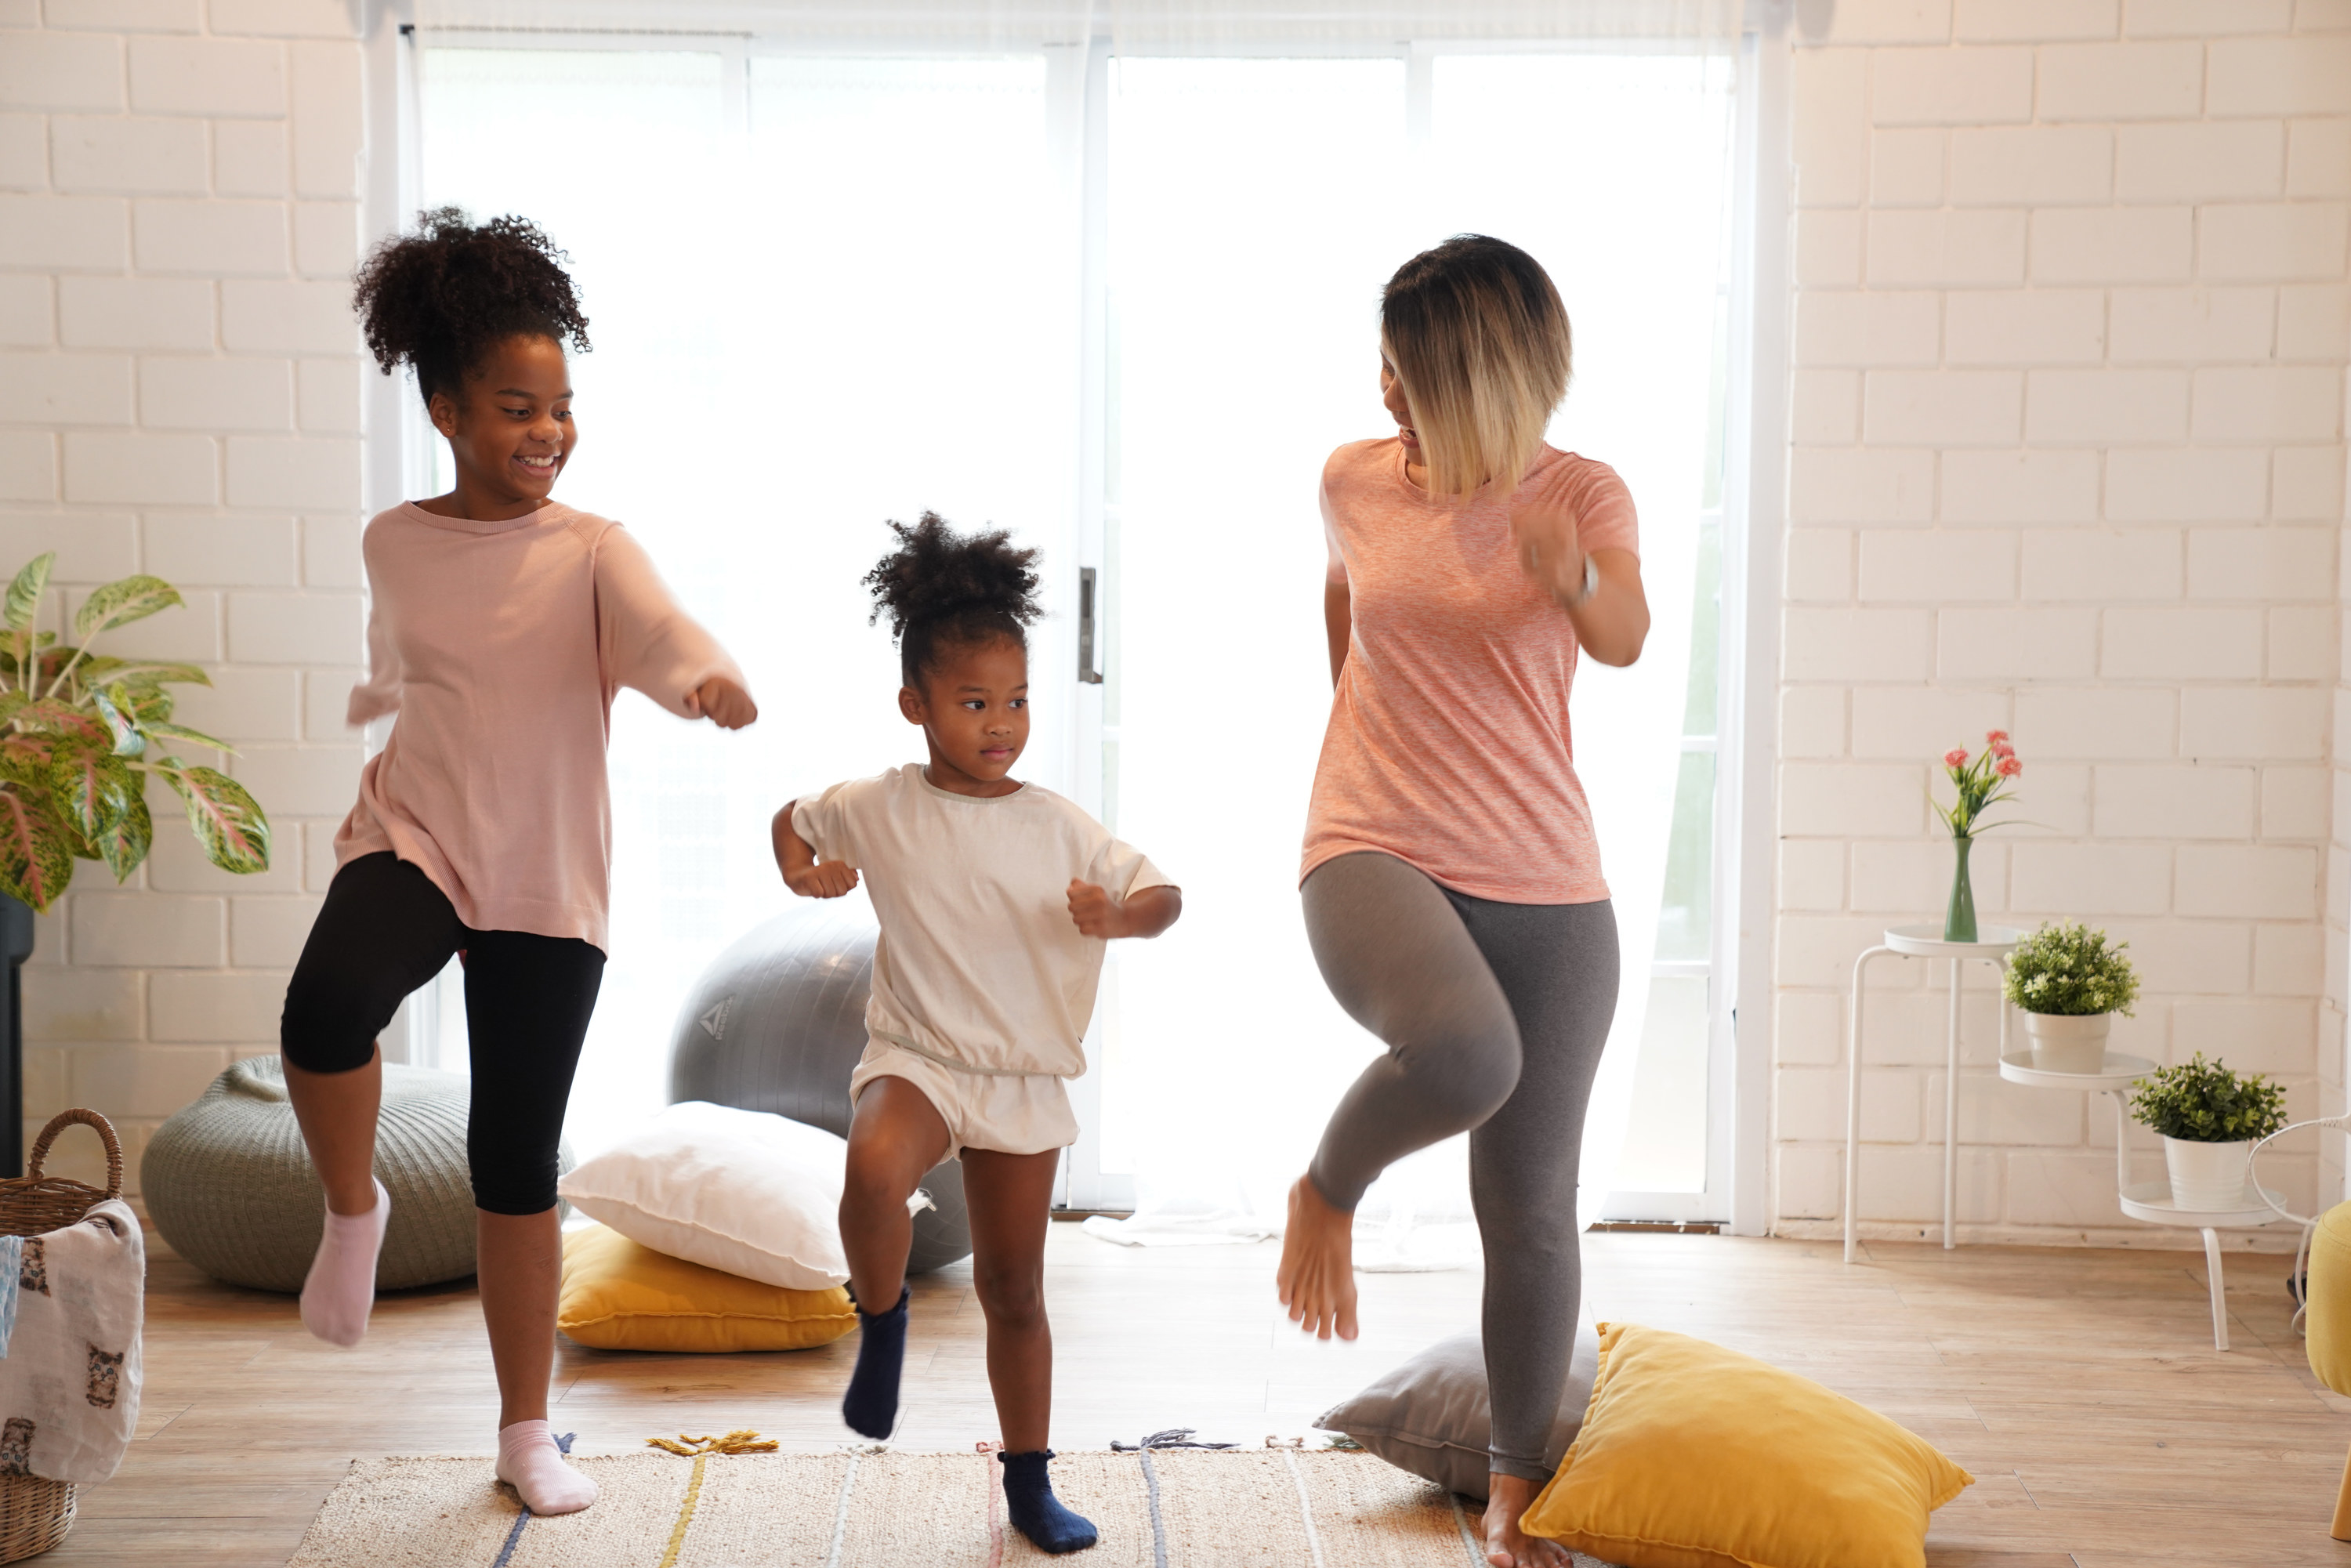 Two kids and their mom dance in their living room.